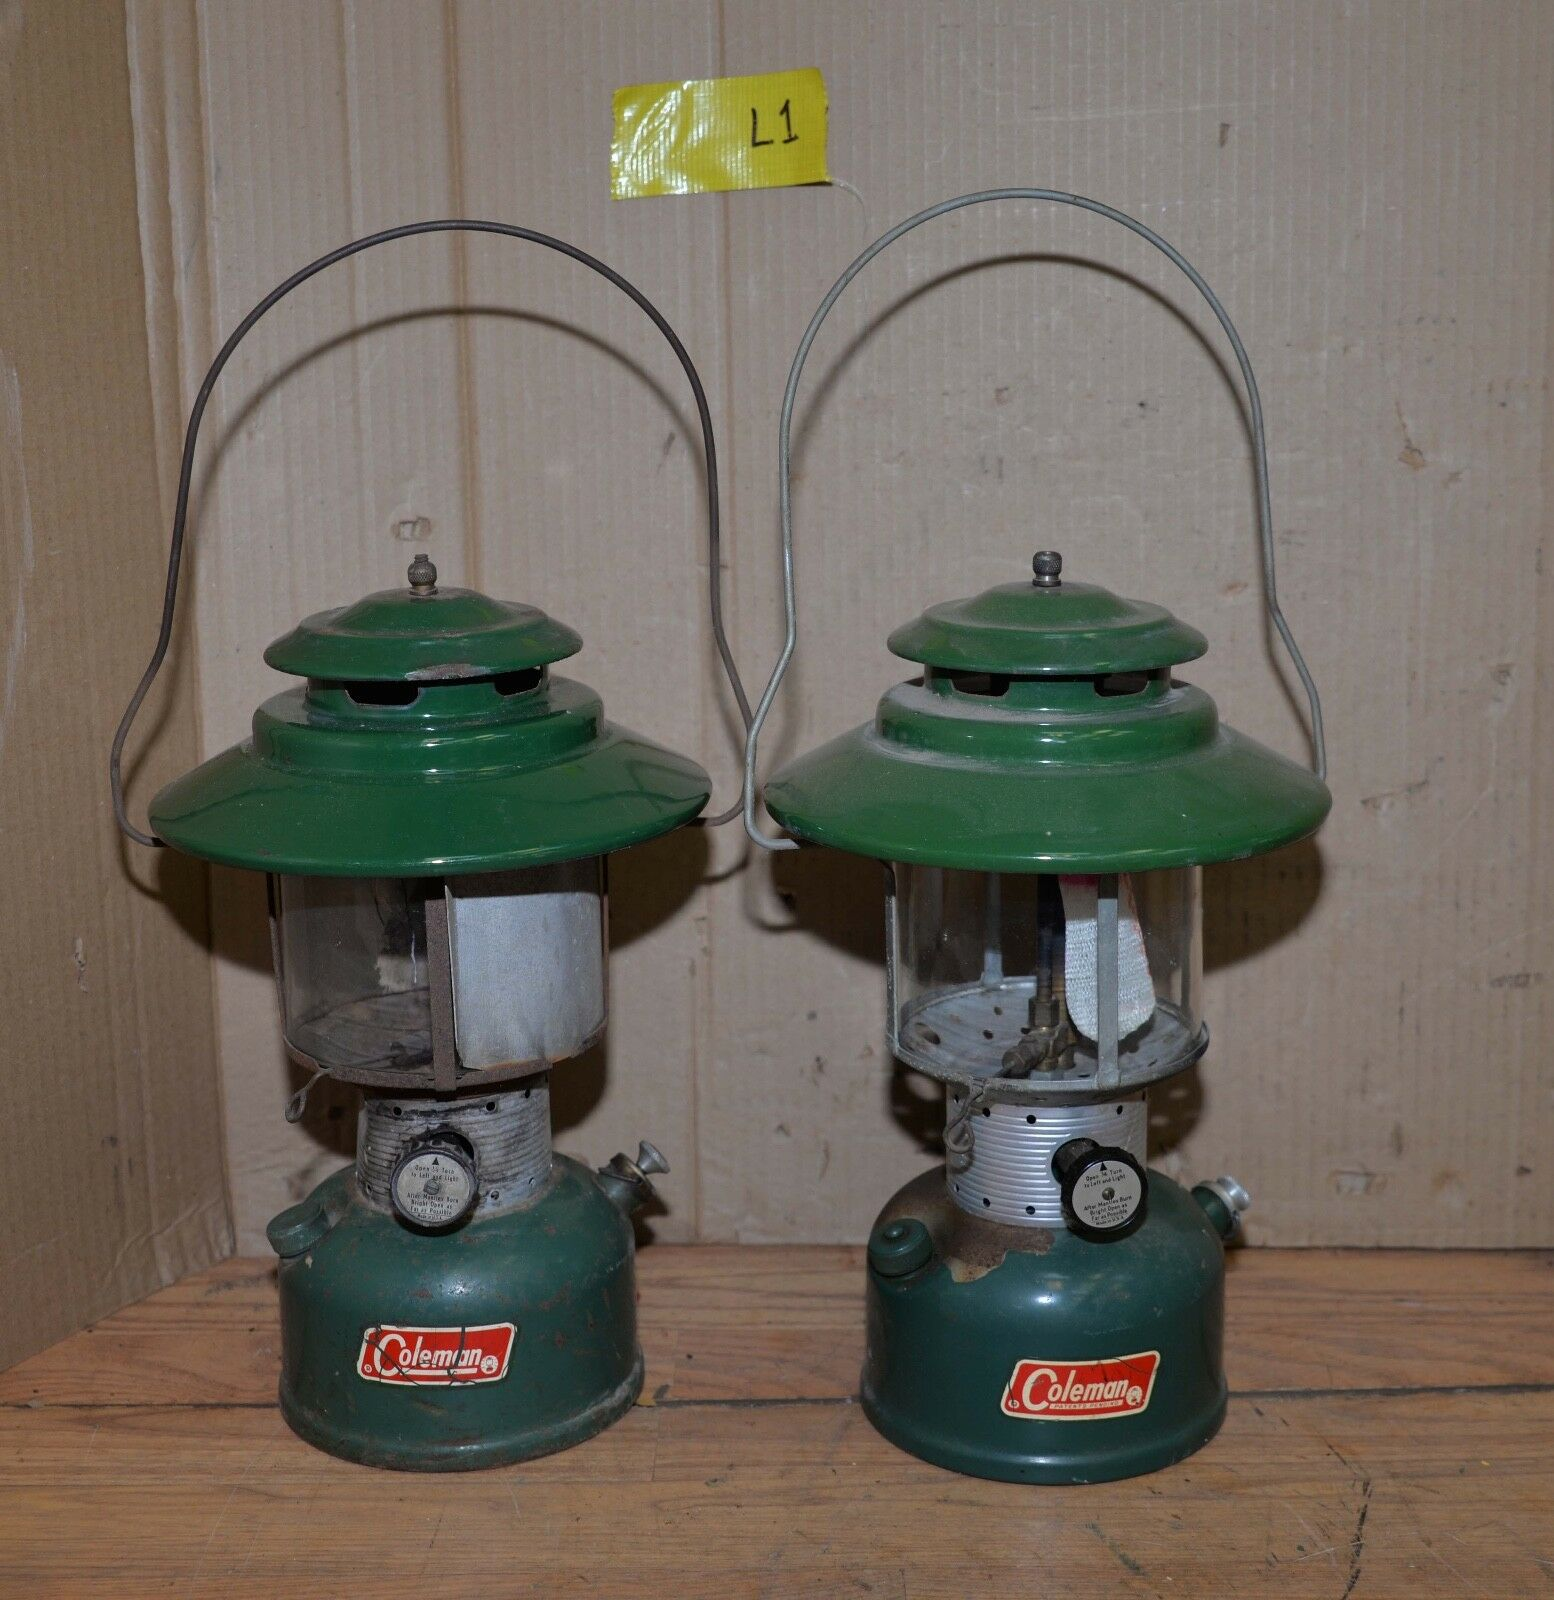 2 Coleman gas lantern big  hat model collectible camping tool 1965 1971 Lot L1  deals sale